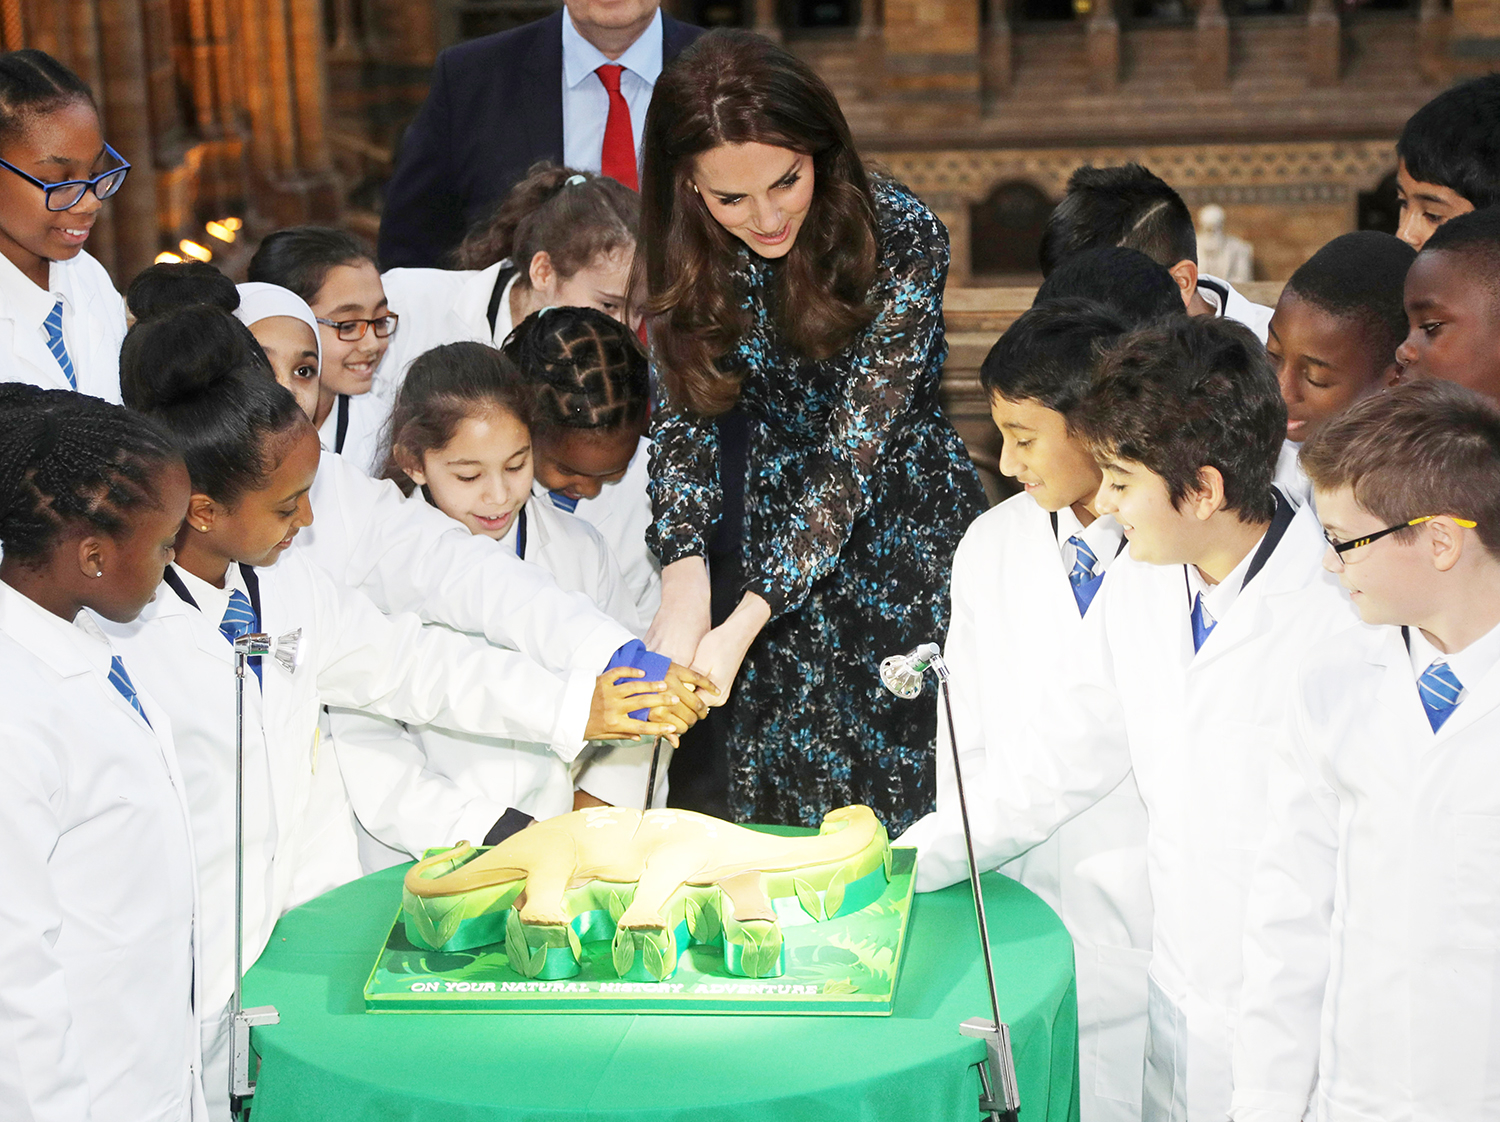 The Duchess of Cambridge cuts a cake with pupils from Oakington Manor Primary School in Wembley, as she attends a children's tea party at the Natural History Museum, London, to celebrate Dippy the Diplodocus's time in Hintze Hall.